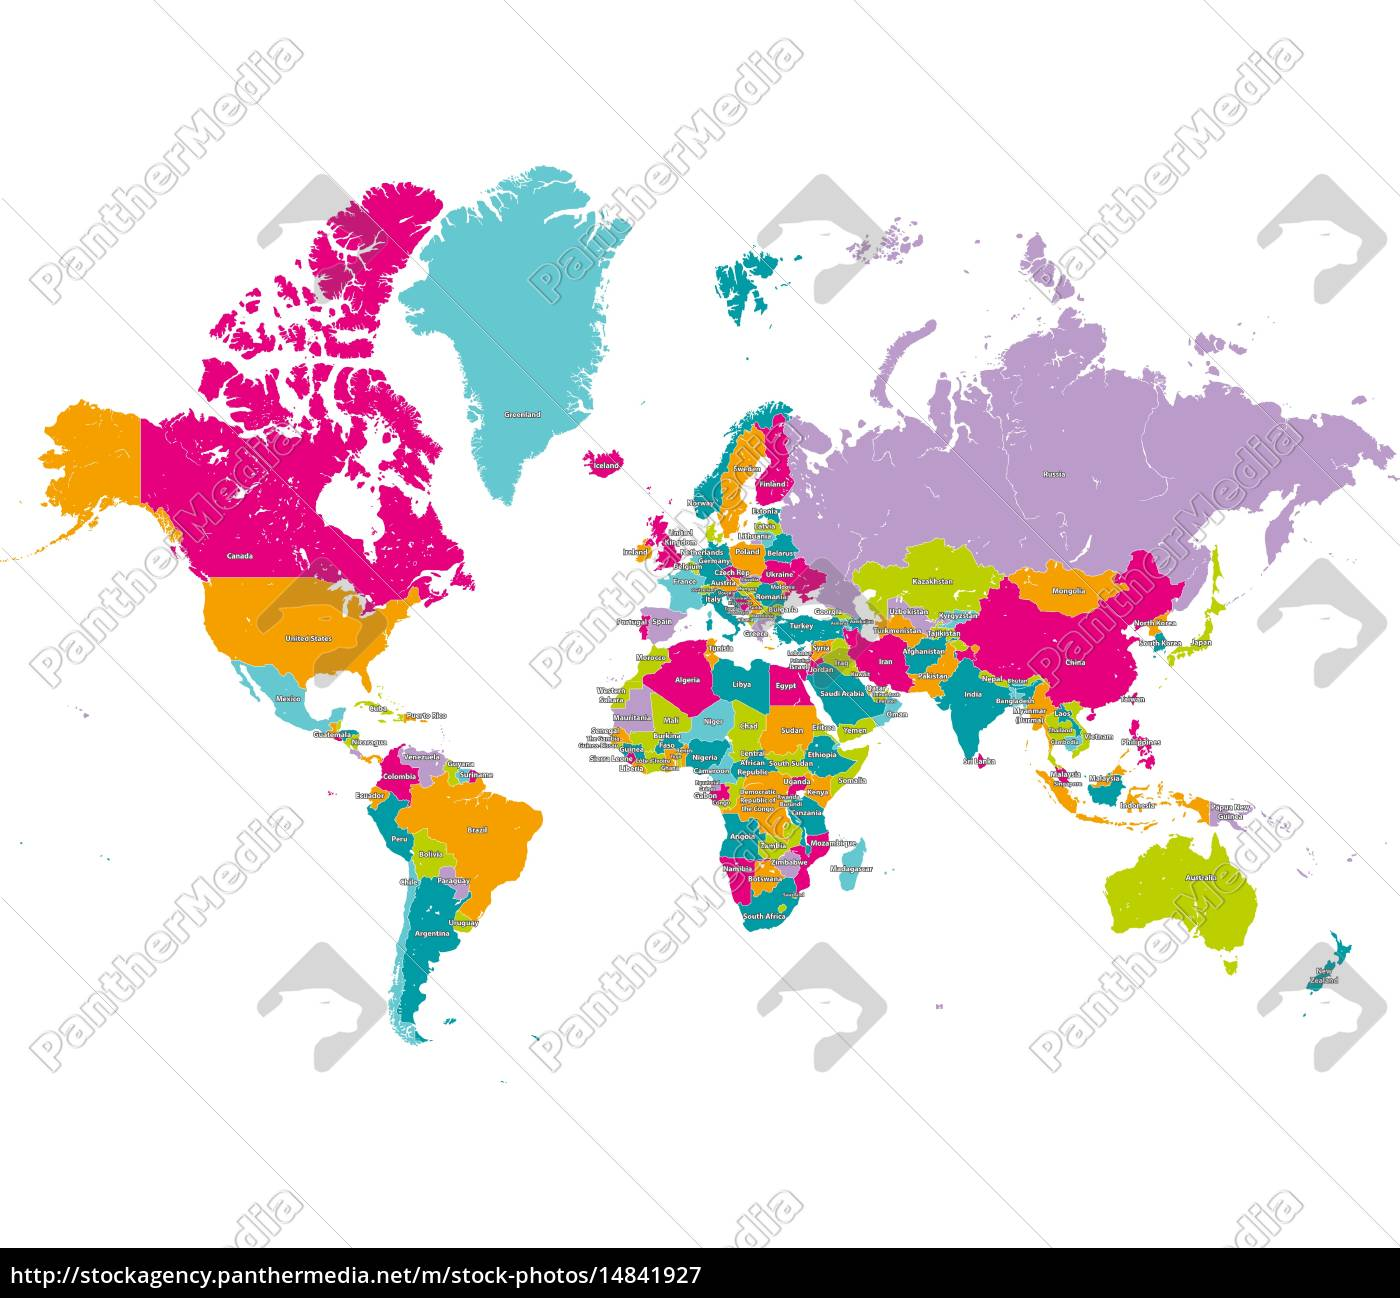 World Map With Countries Borders And Country Names Royalty Free